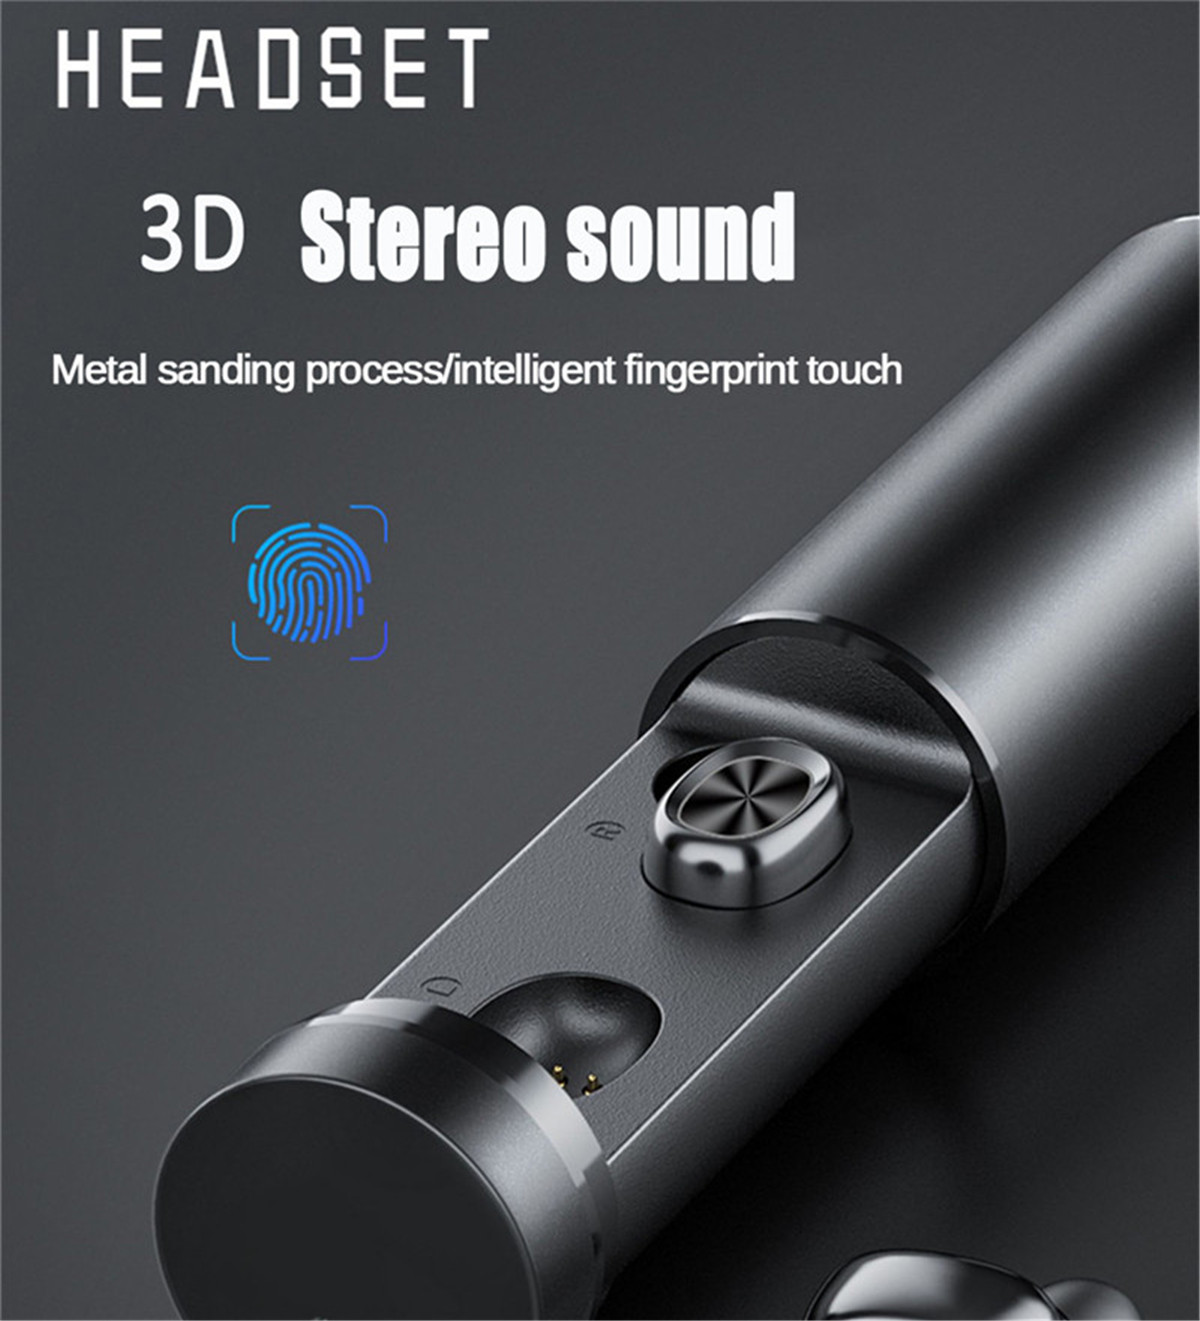 2020 Brand New Bluetooth Wireless Headsets Sports Earphone with Protable Charging Box Waterproof HIFI Sound Earbuds